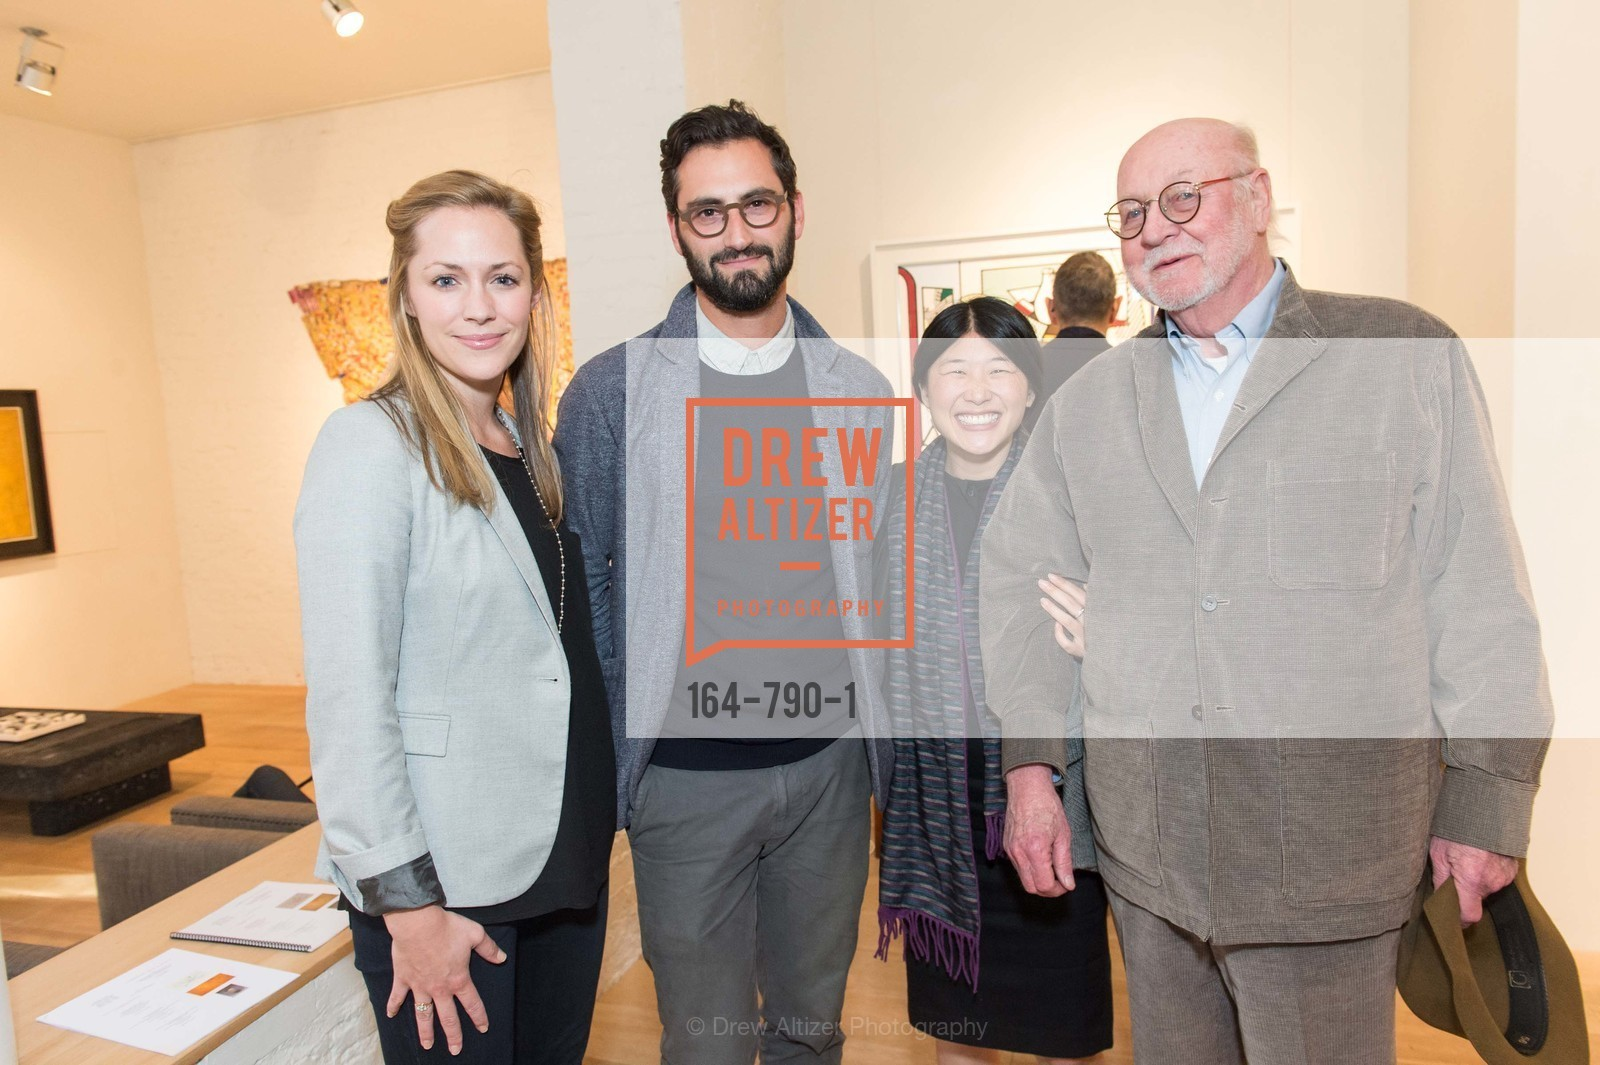 Liz Hurley, Joseph Becker, Micki Meng, Jack Wendler, Post War and Contemporary Preview at HEDGE GALLERY, US, April 16th, 2015,Drew Altizer, Drew Altizer Photography, full-service agency, private events, San Francisco photographer, photographer california